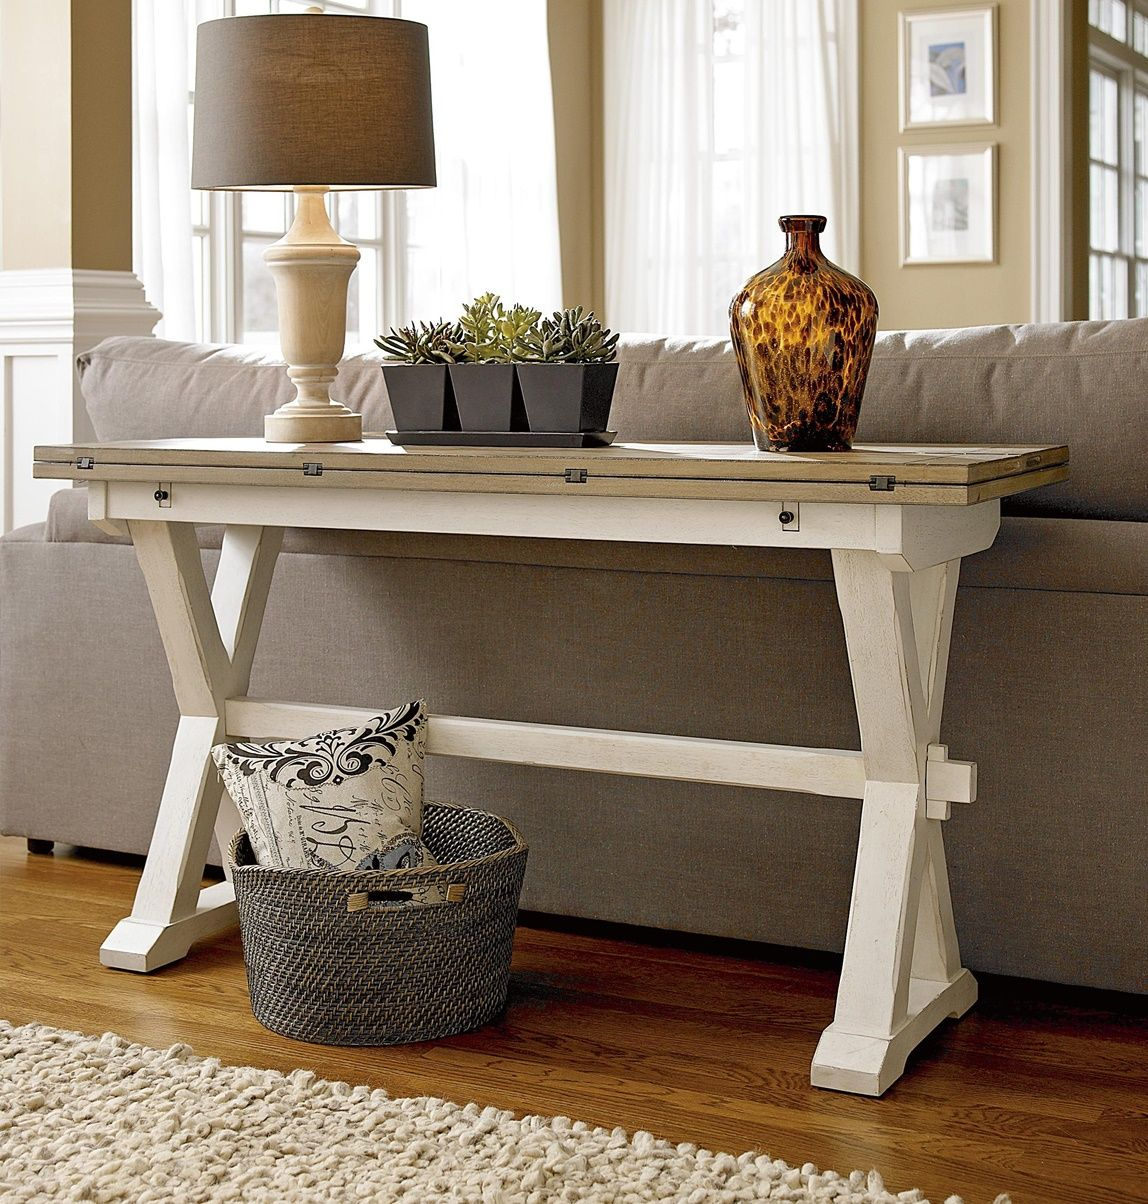 Coastal Beach White Drop Leaf Kitchen Console Table In